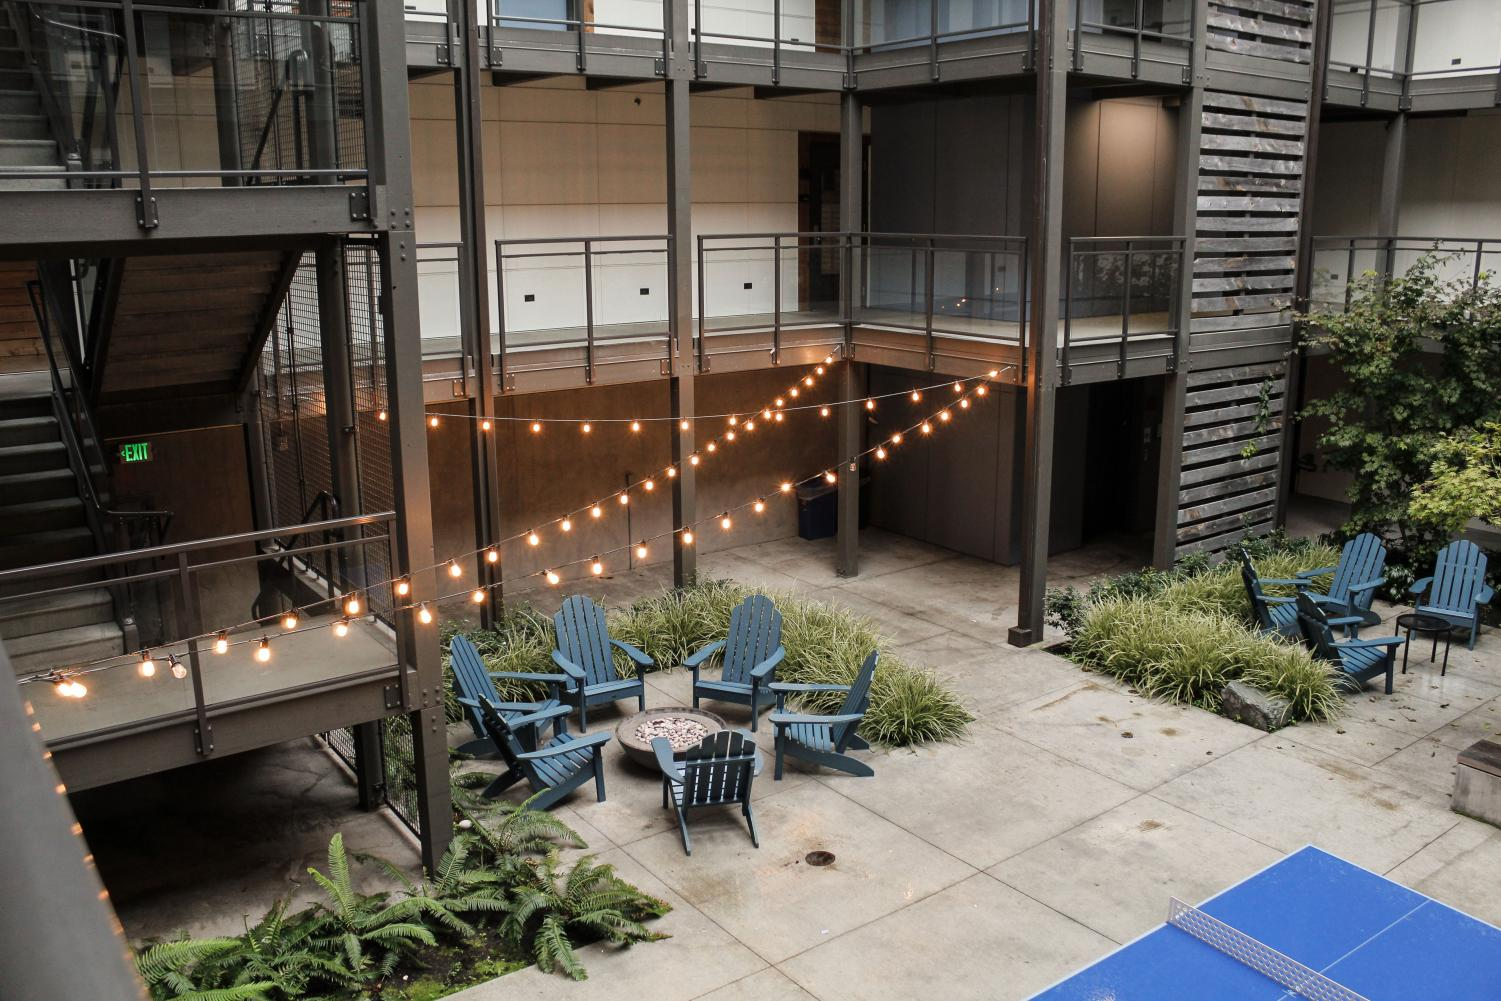 Courtyard at Cedar Hall dorm including ping-pong tables and fire pits.